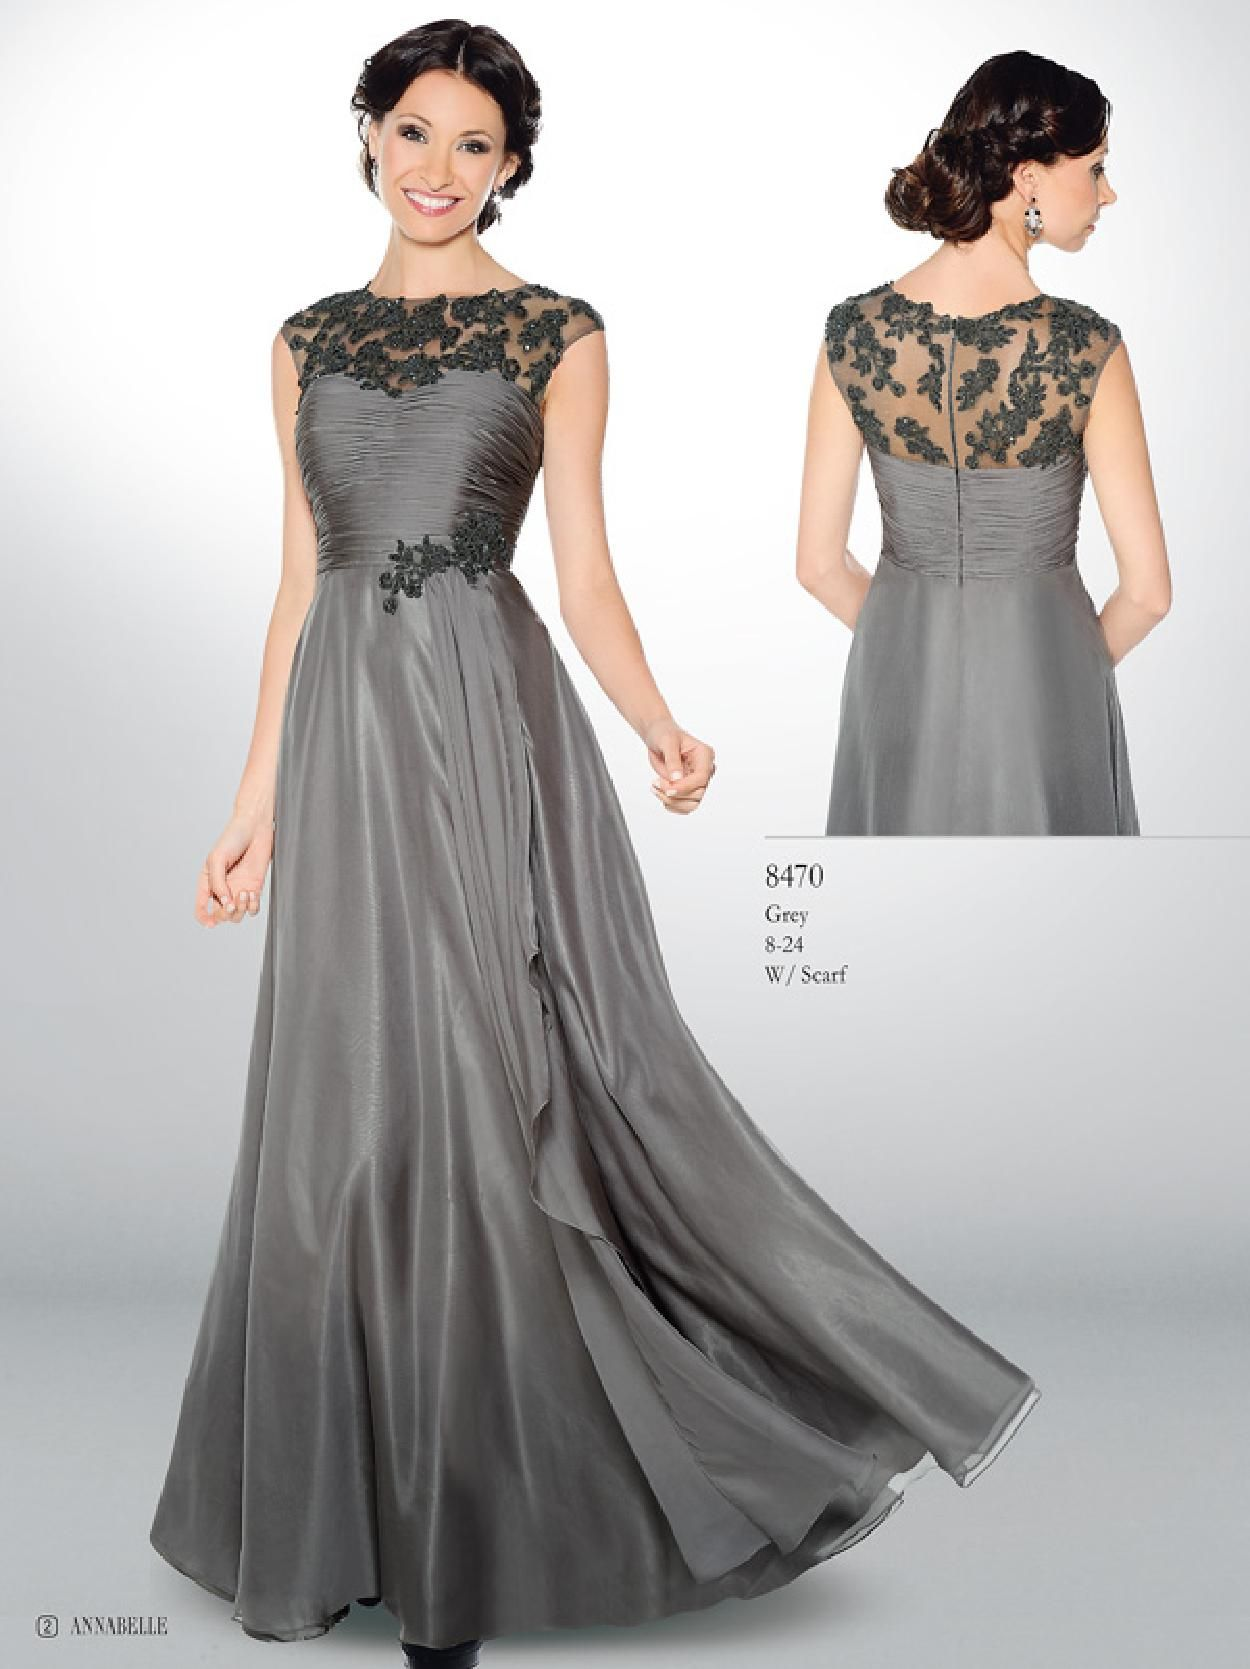 Evening Church Dresses